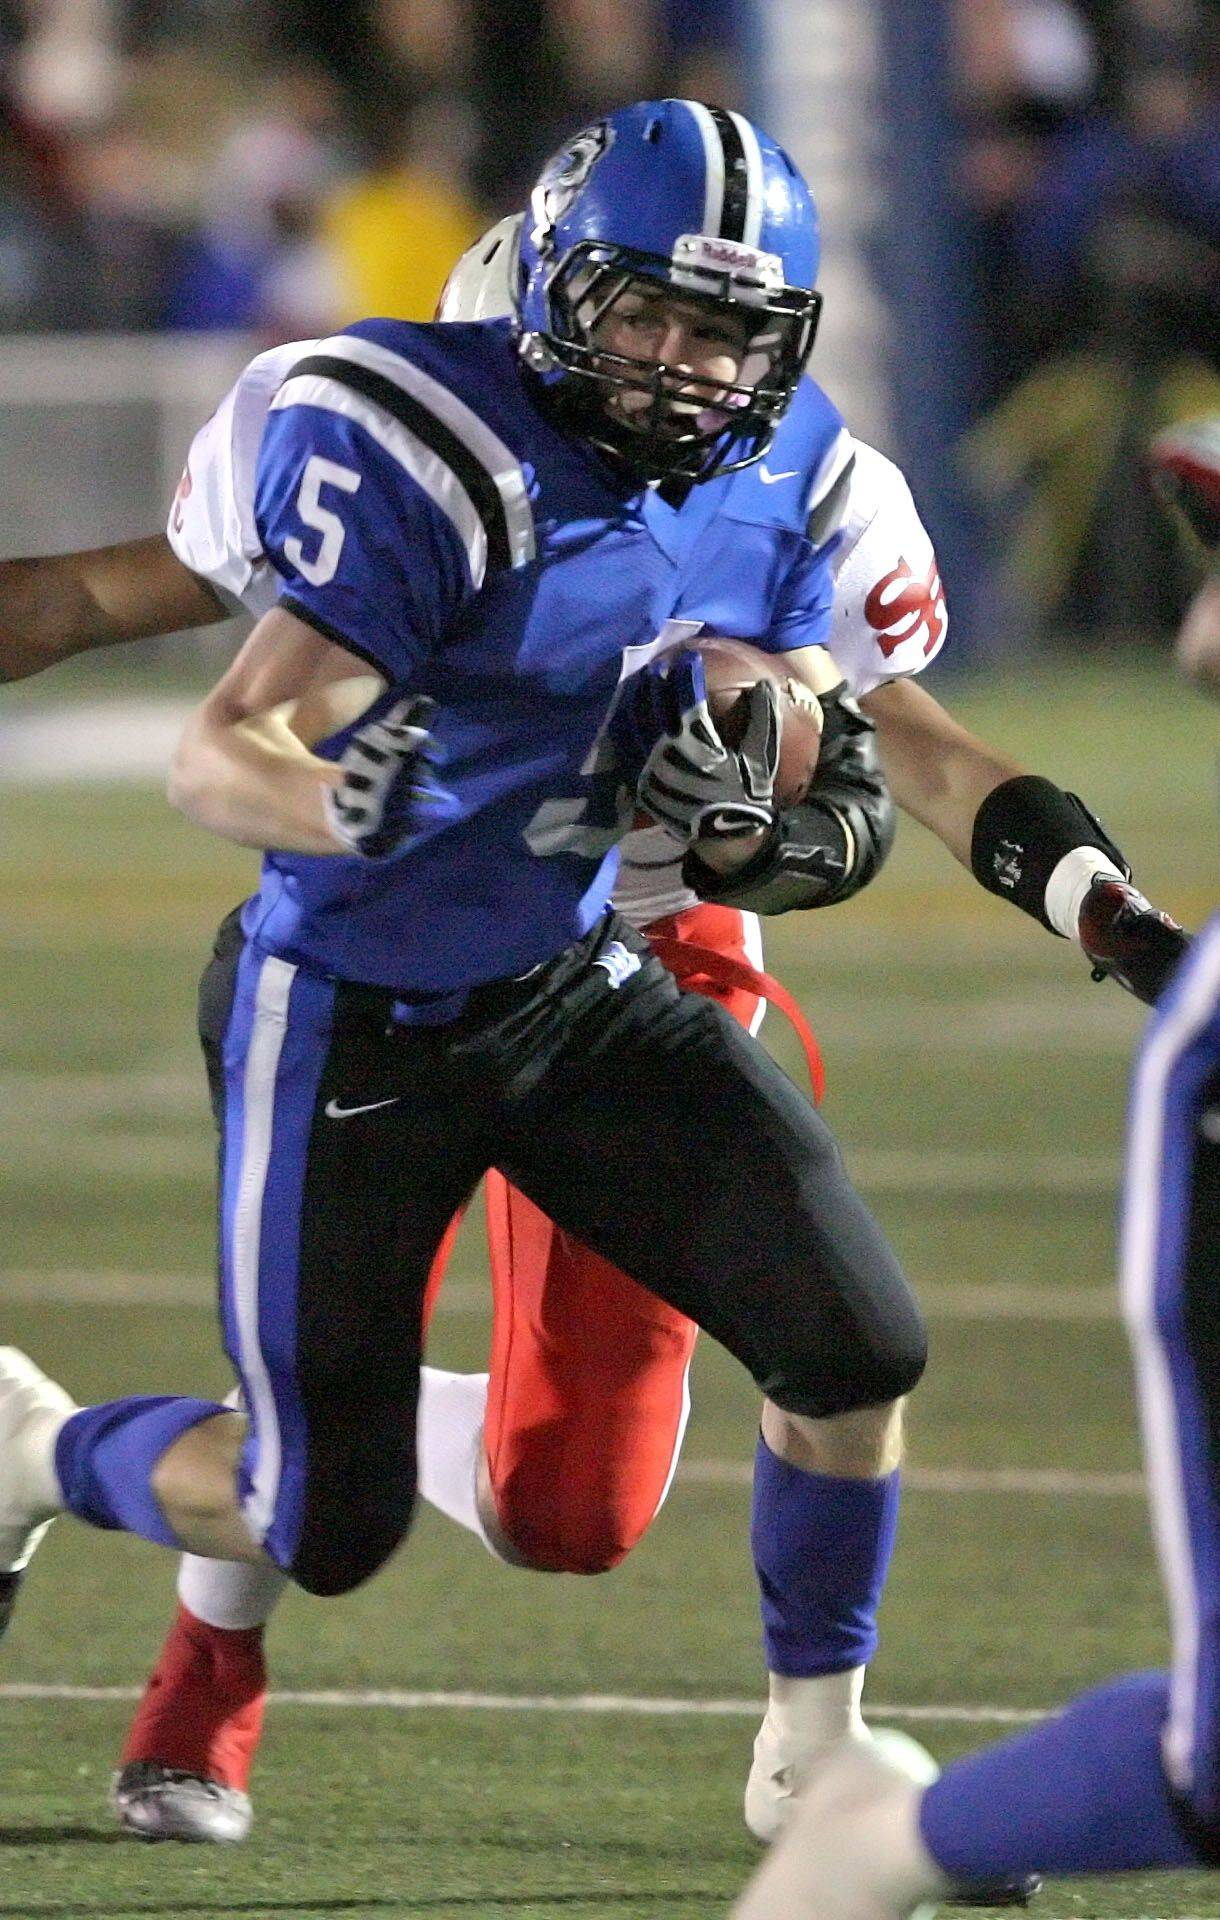 Lake Zurich's Jacob Brinlee runs during the IHSA Class 7A football semi final game against St. Rita Saturday night at Lake Zurich High School.